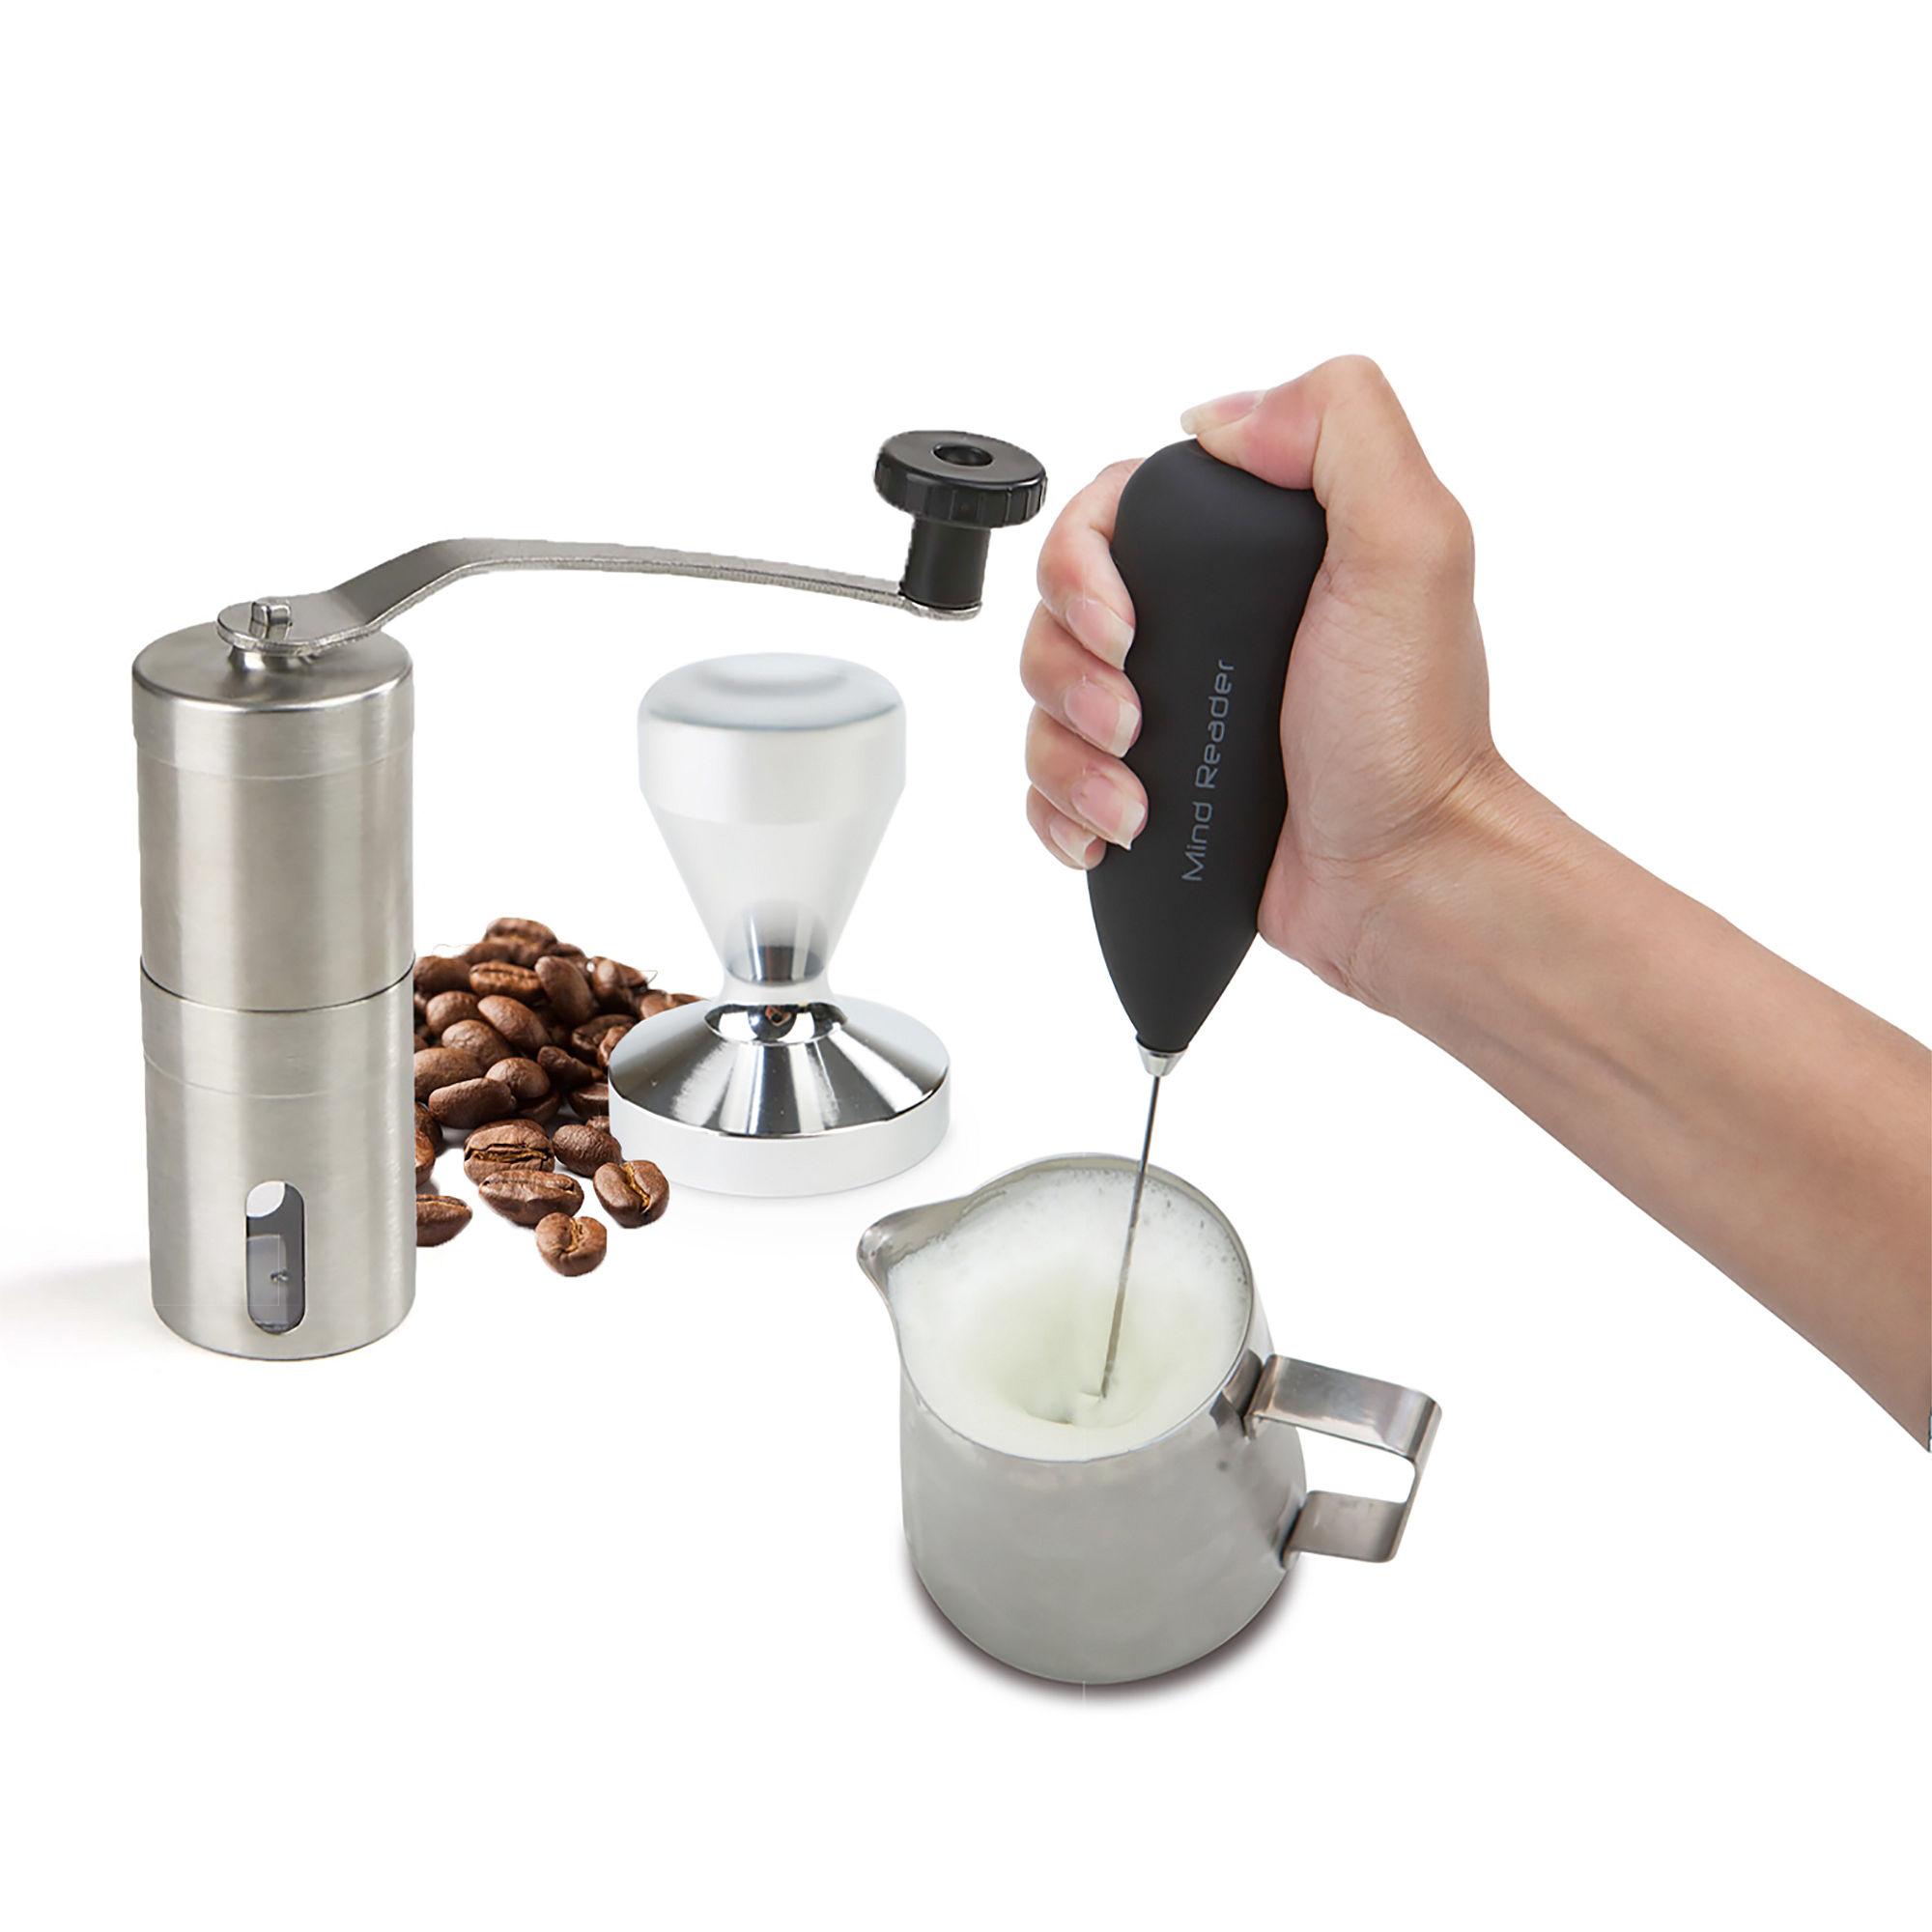 Mind Reader Coffee Lovers 4-Piece Set with Tamper, Frother, Frothing Pitcher, & Coffee Grinder